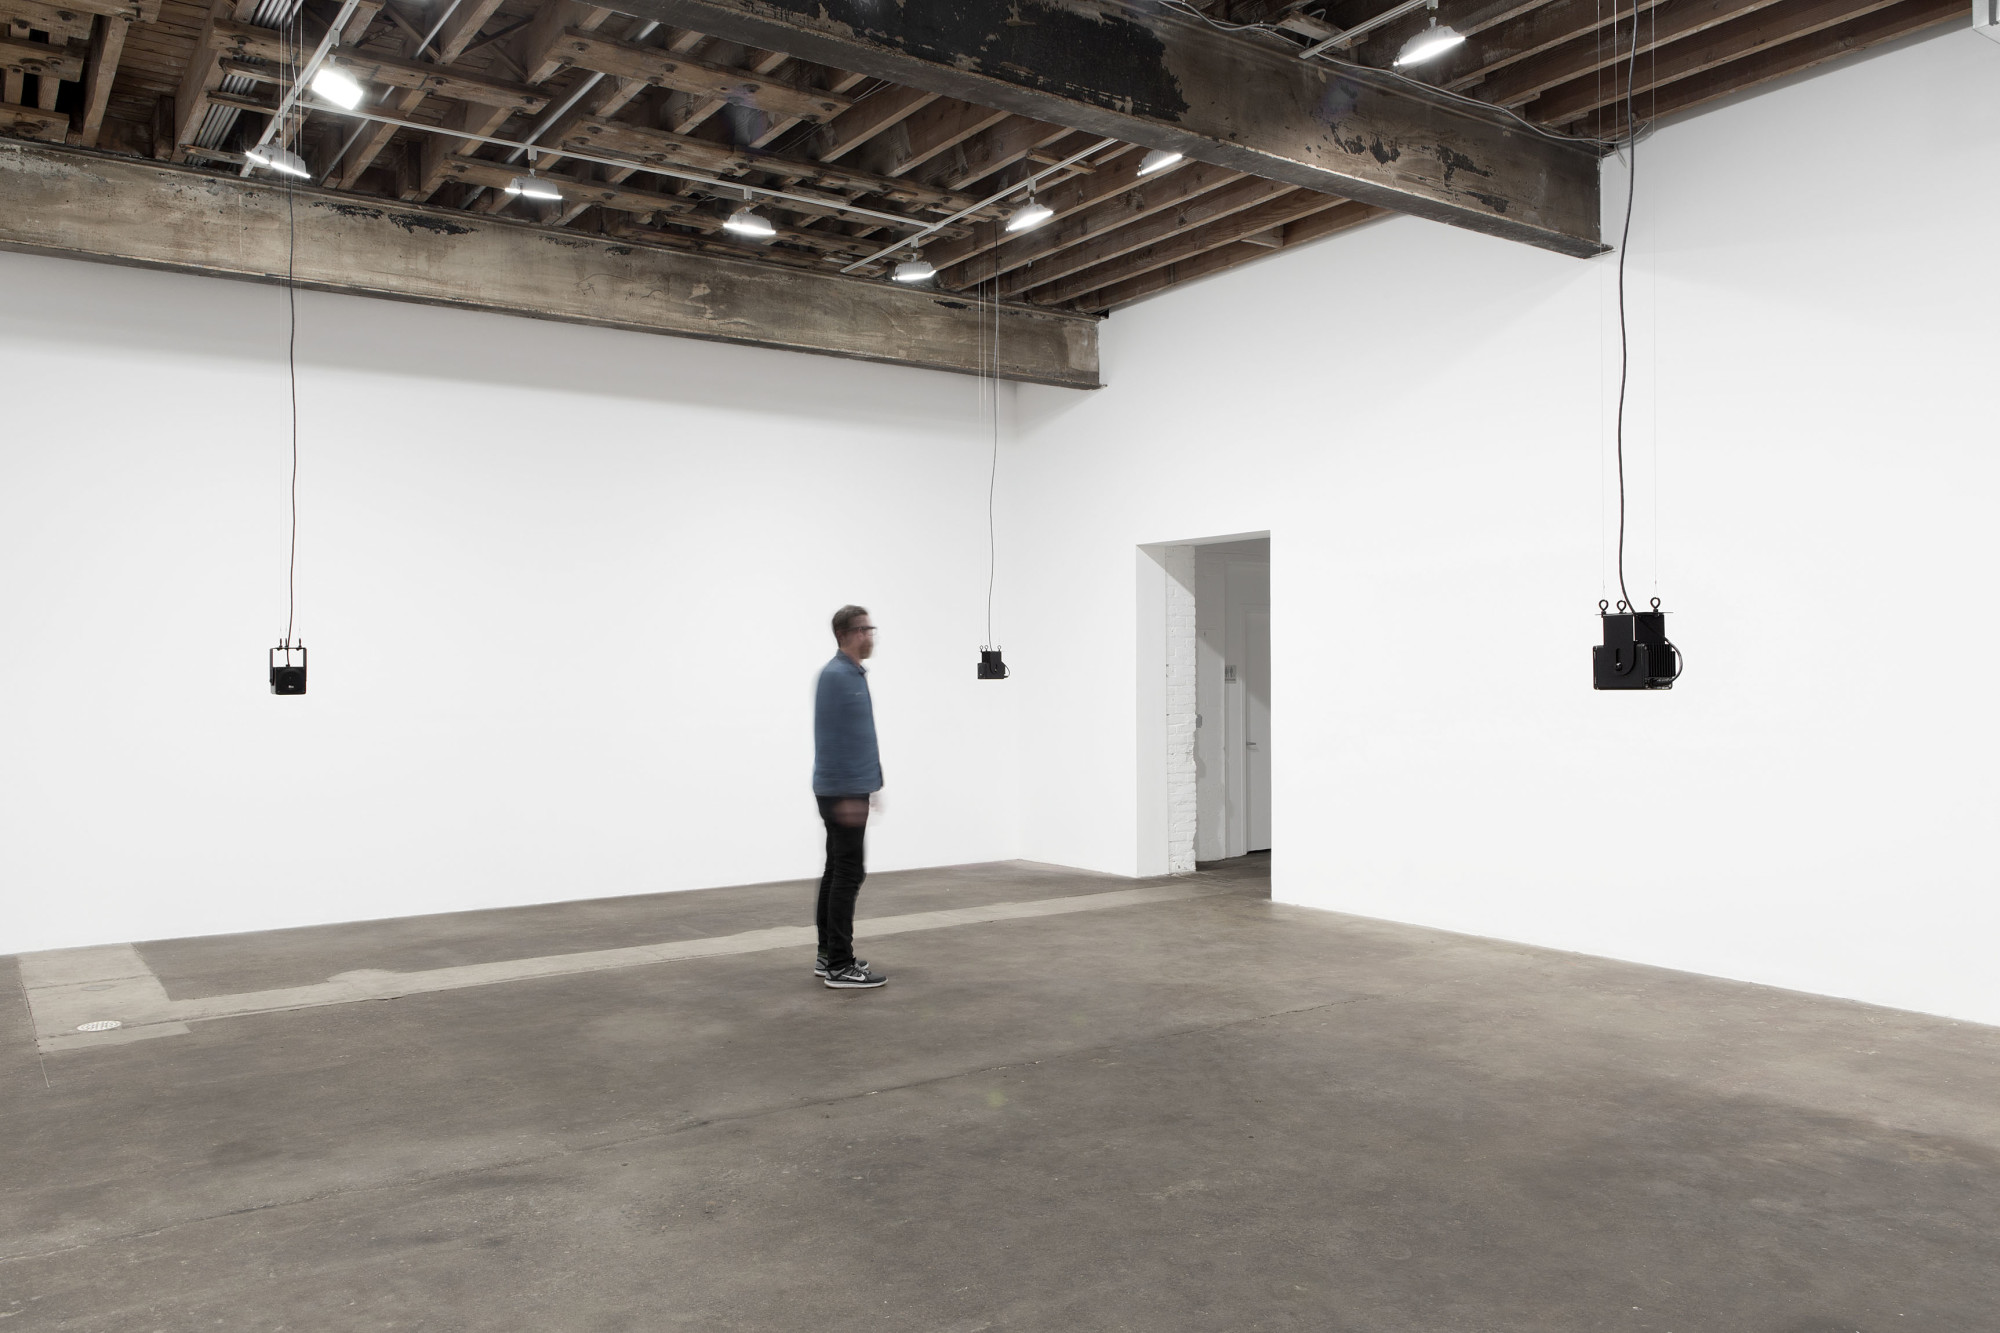 <p>Installation view, <em>Exploring Compositional Epistemologies</em>, Midway Contemporary, Minneapolis, 16 January – 14 February 2015</p>